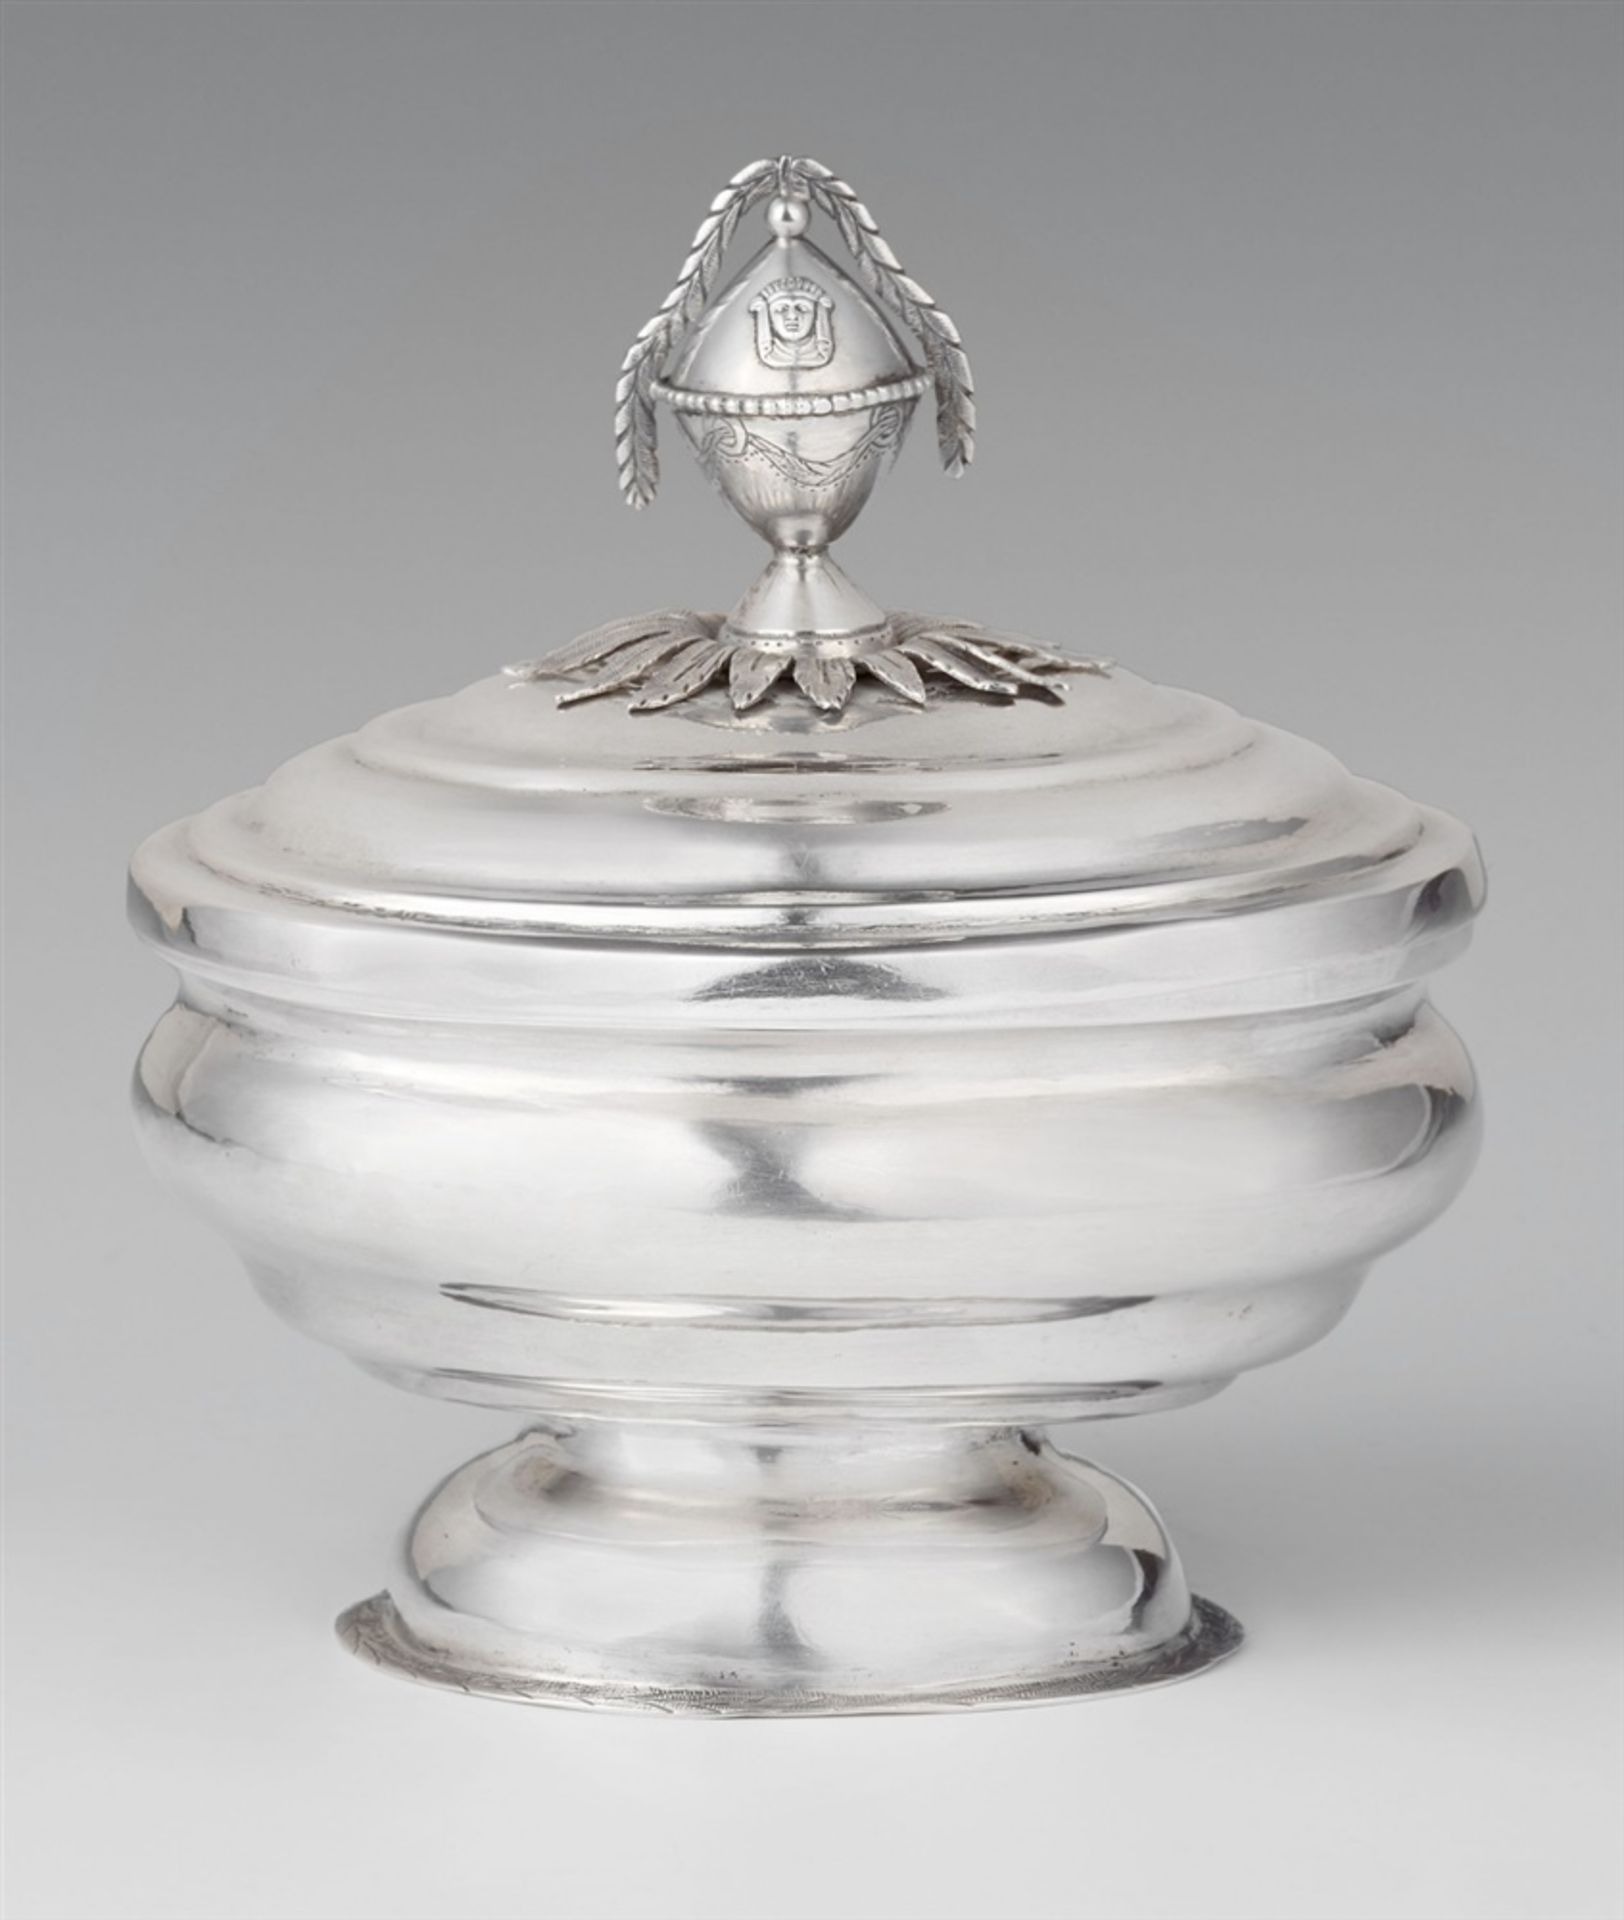 Los 754 - A rare Tübingen sugar boxSilver Oval sugar box on a waisted base, the finial formed as a festooned